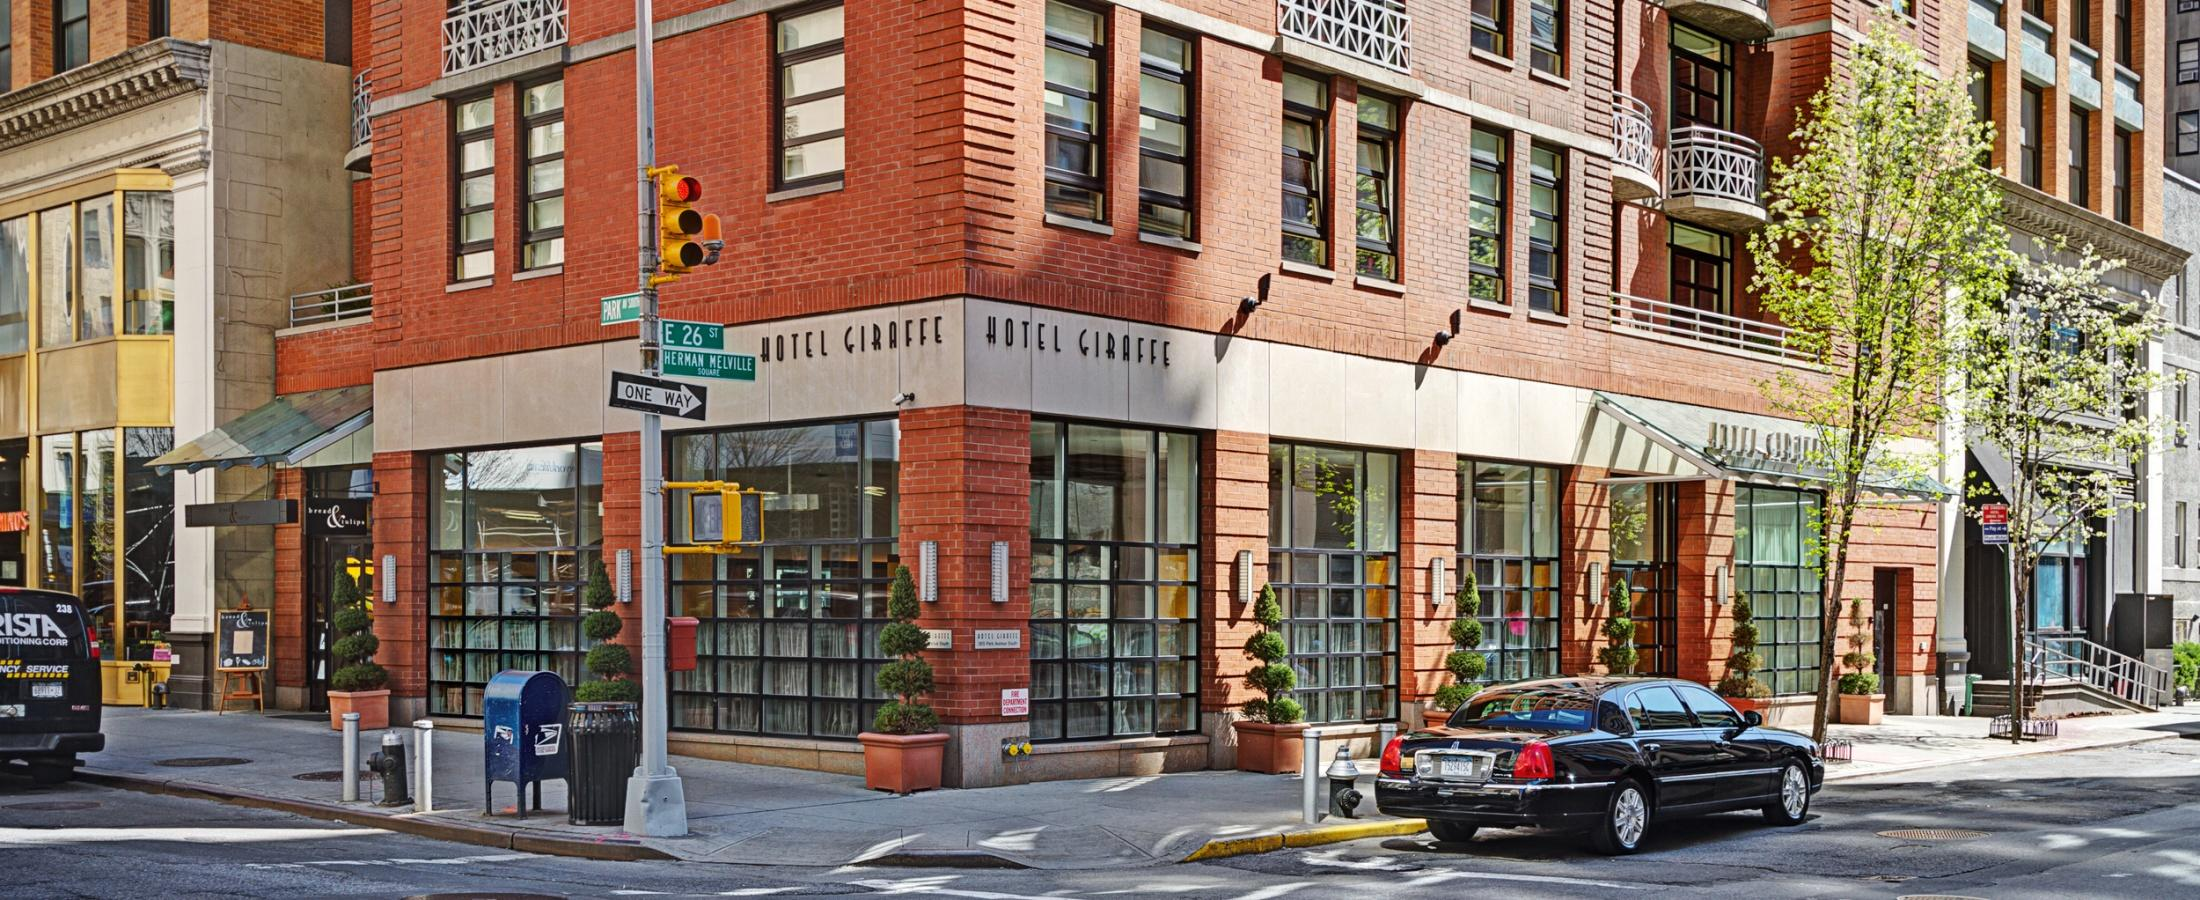 Hotel Giraffe is located on the corner of East 26th St and Park Ave South, just east of Madison Square Park.